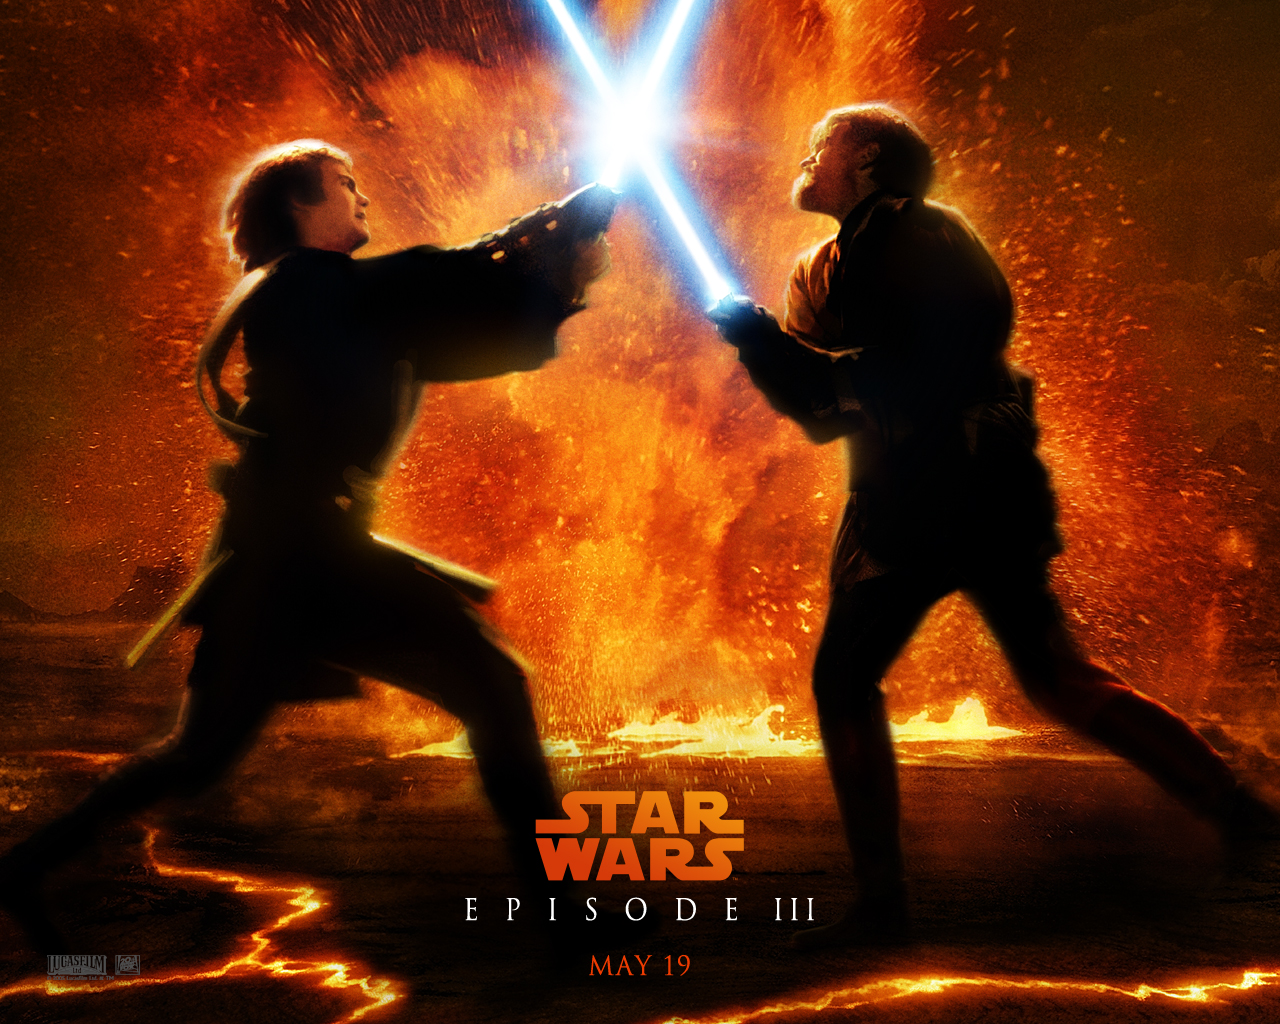 http://3.bp.blogspot.com/-pQFxm1aGNh4/UTyj0Oh0QkI/AAAAAAAAAXk/rzjIOoqtFY0/s1600/Star-Wars-Episode-III-Revenge-of-the-Sith-Movie-Wallpaper-001.jpg